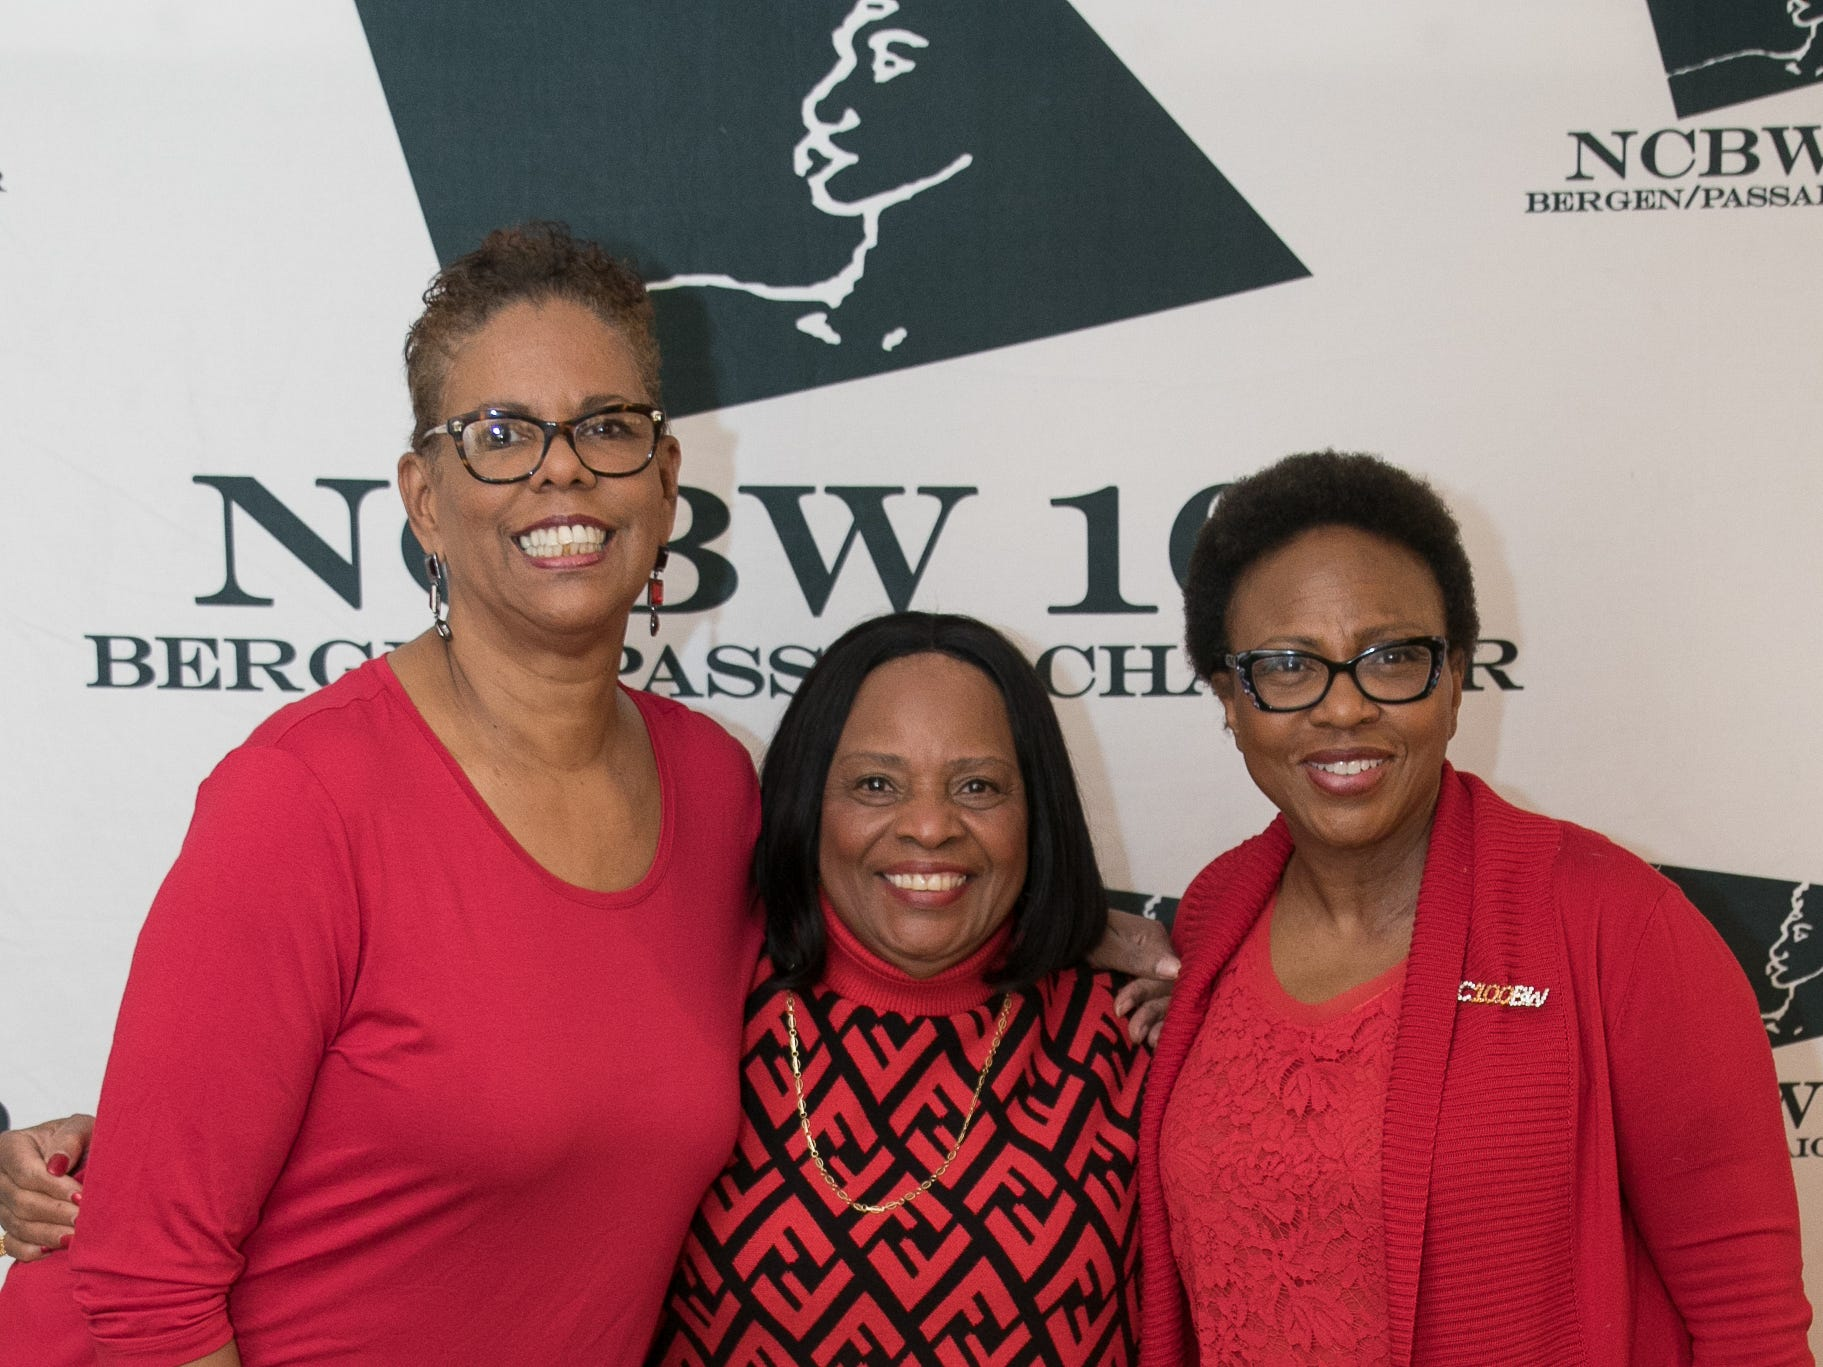 Gwen Worthy-Brown, Hazel Skeete, Jaclyn Durant. The National Coalition of Black Women of Bergen and Passaic Counties held its annual Heart Healthy Go Red Event at The Hackensack Performing Arts Theater. 02/01/2019